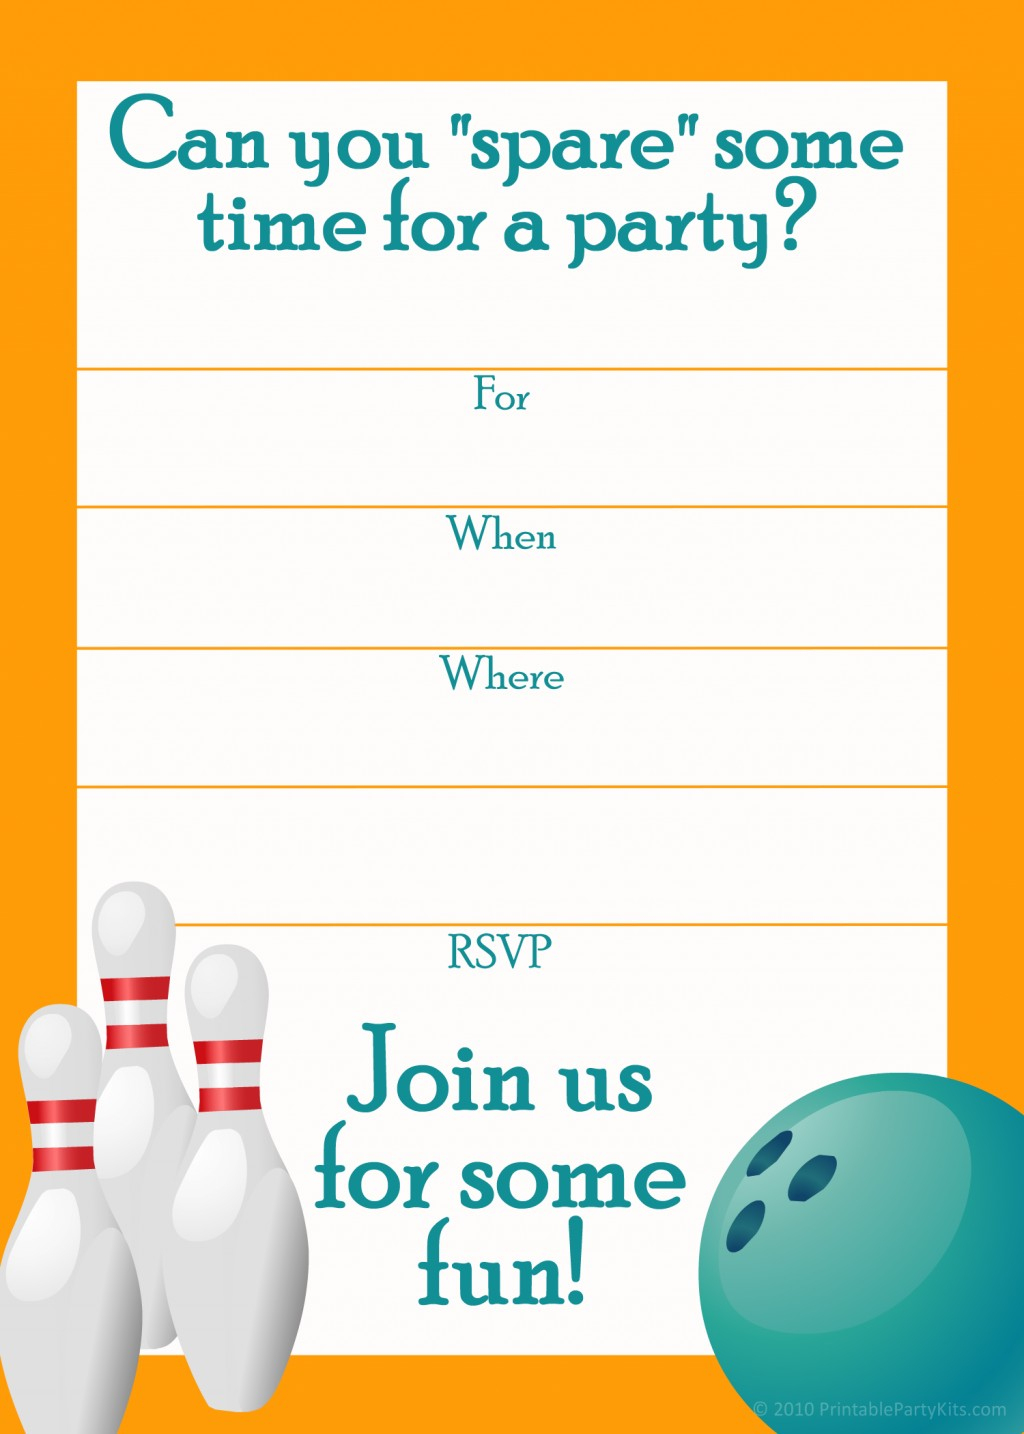 Free Printable Bowling Party Invitation Templates Image Group (50+) - Free Printable Bowling Invitation Templates